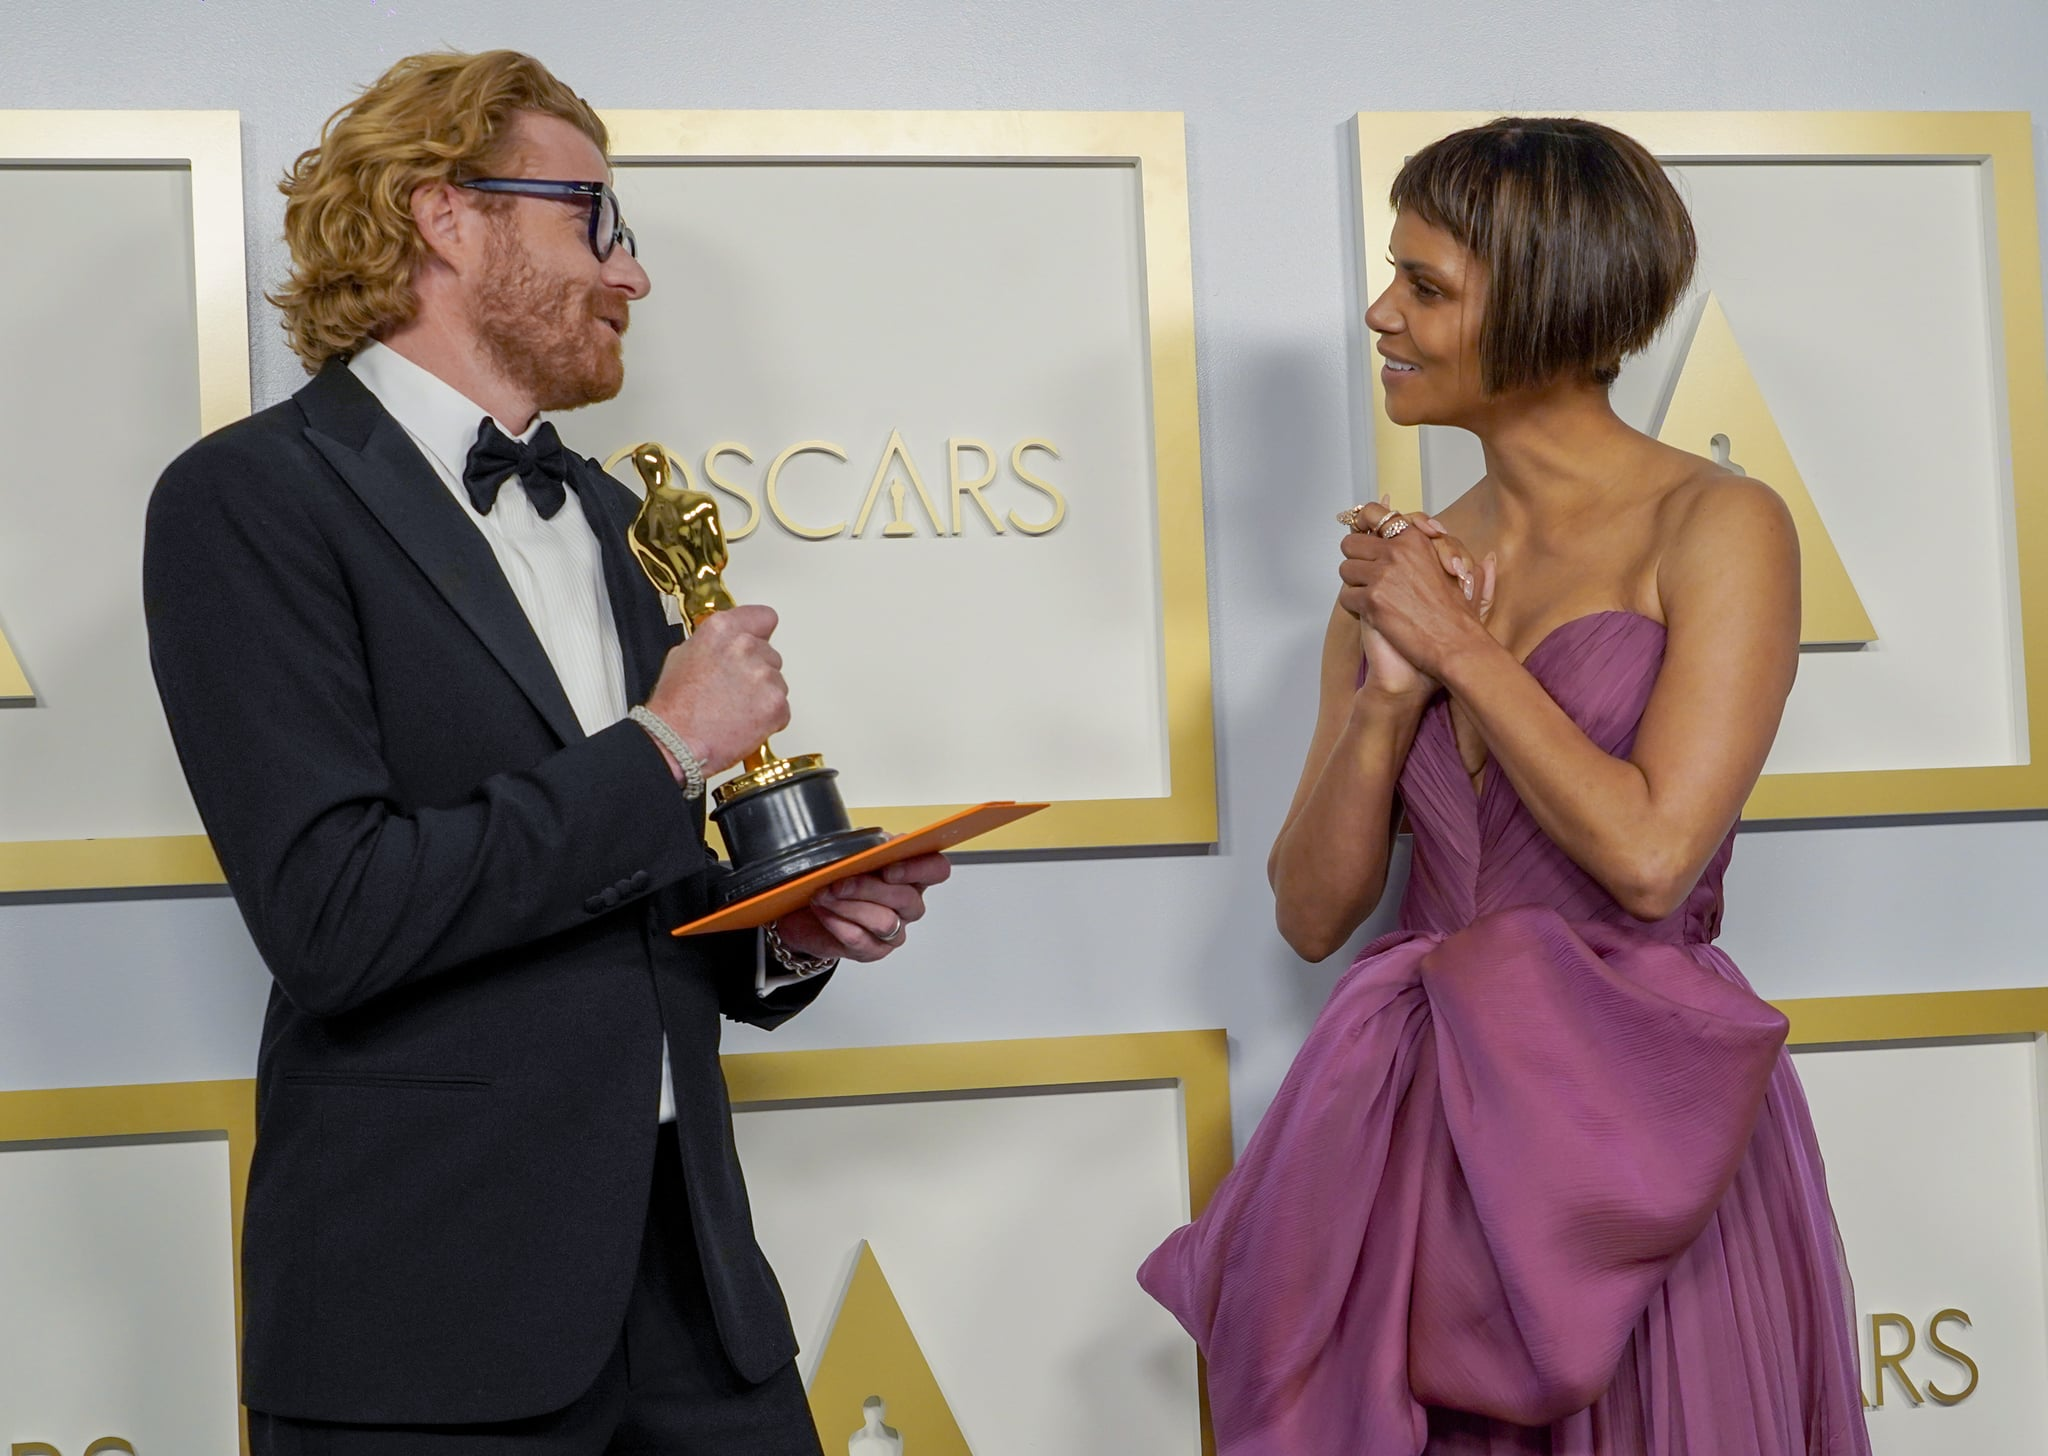 Erik Messerschmidt and Halle Berry at the 2021 Oscars | What an Evening!  See the Very Best Photos From This Year's Oscars Right Here | POPSUGAR  Celebrity Photo 27